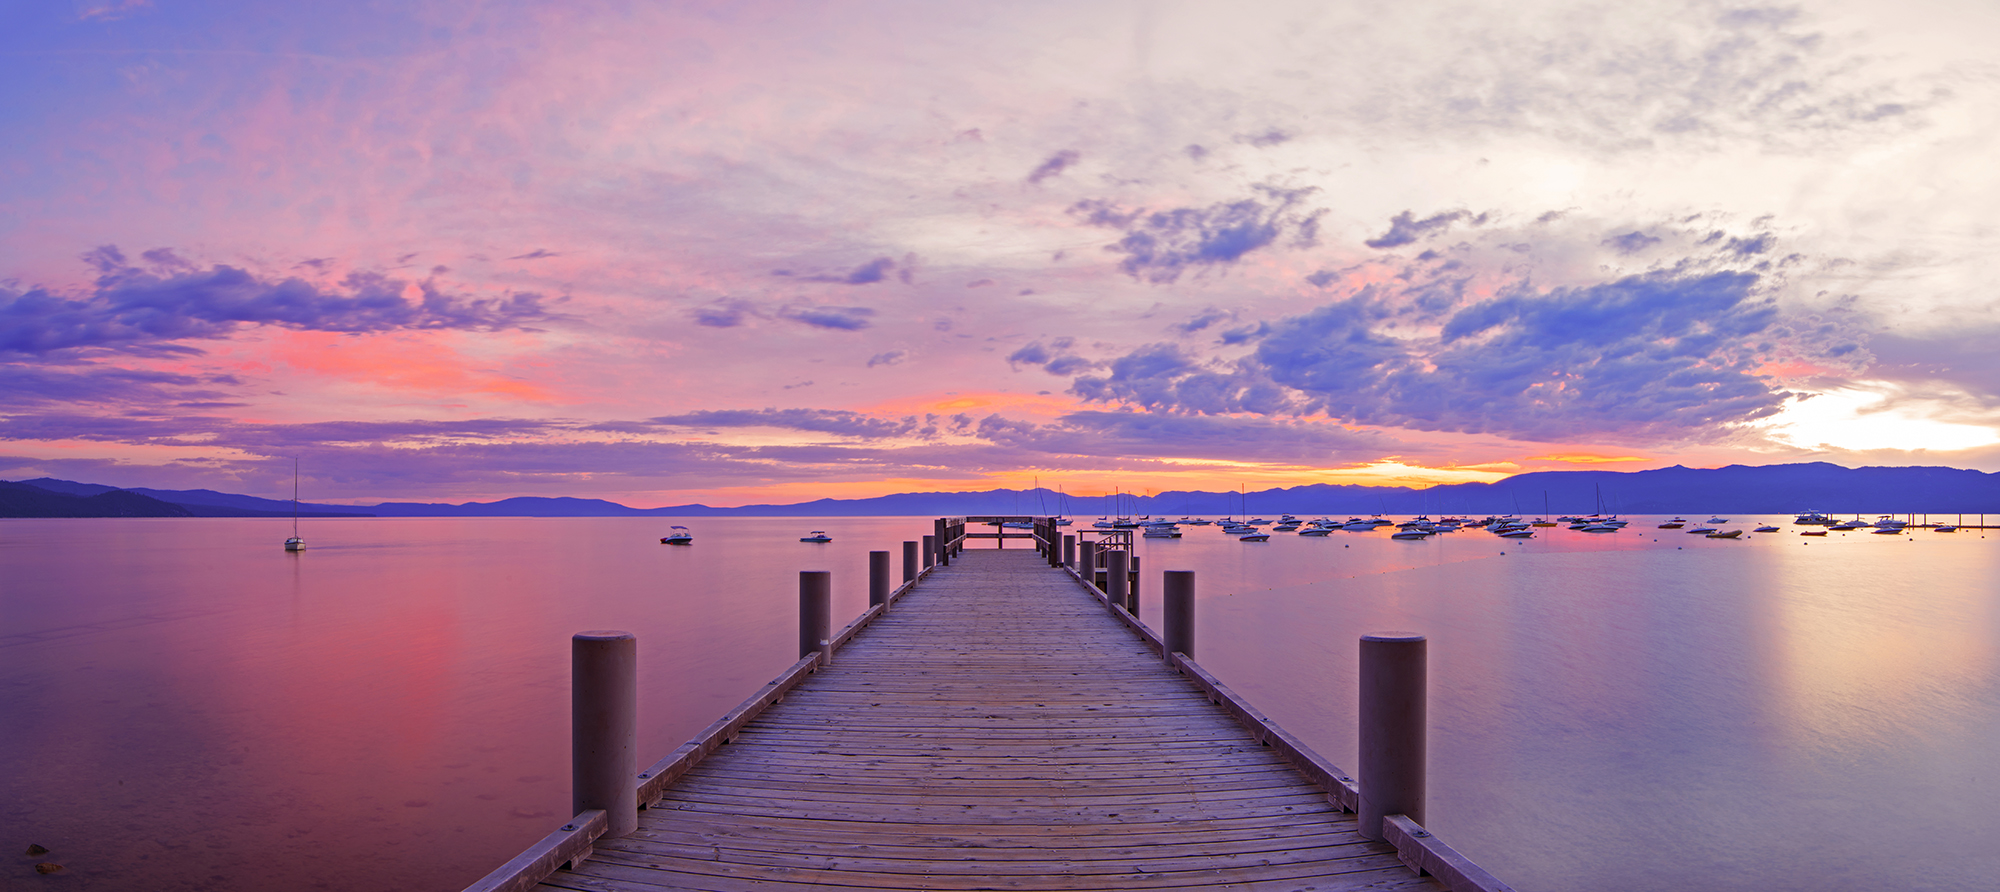 Morning Pier - Lake tahoe